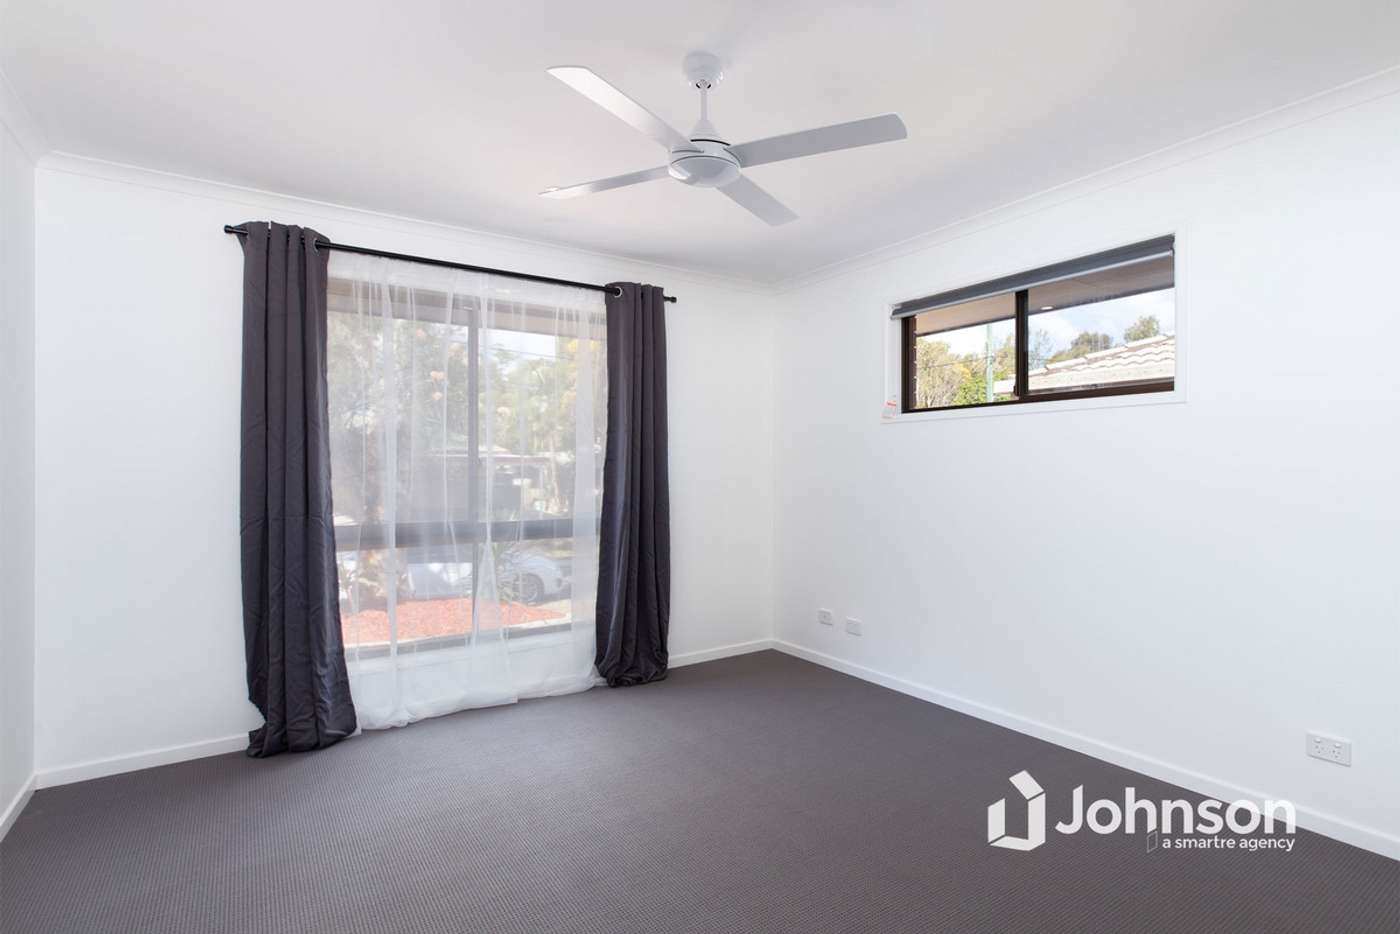 Fifth view of Homely house listing, 24 Bangalow Crescent, Raceview QLD 4305